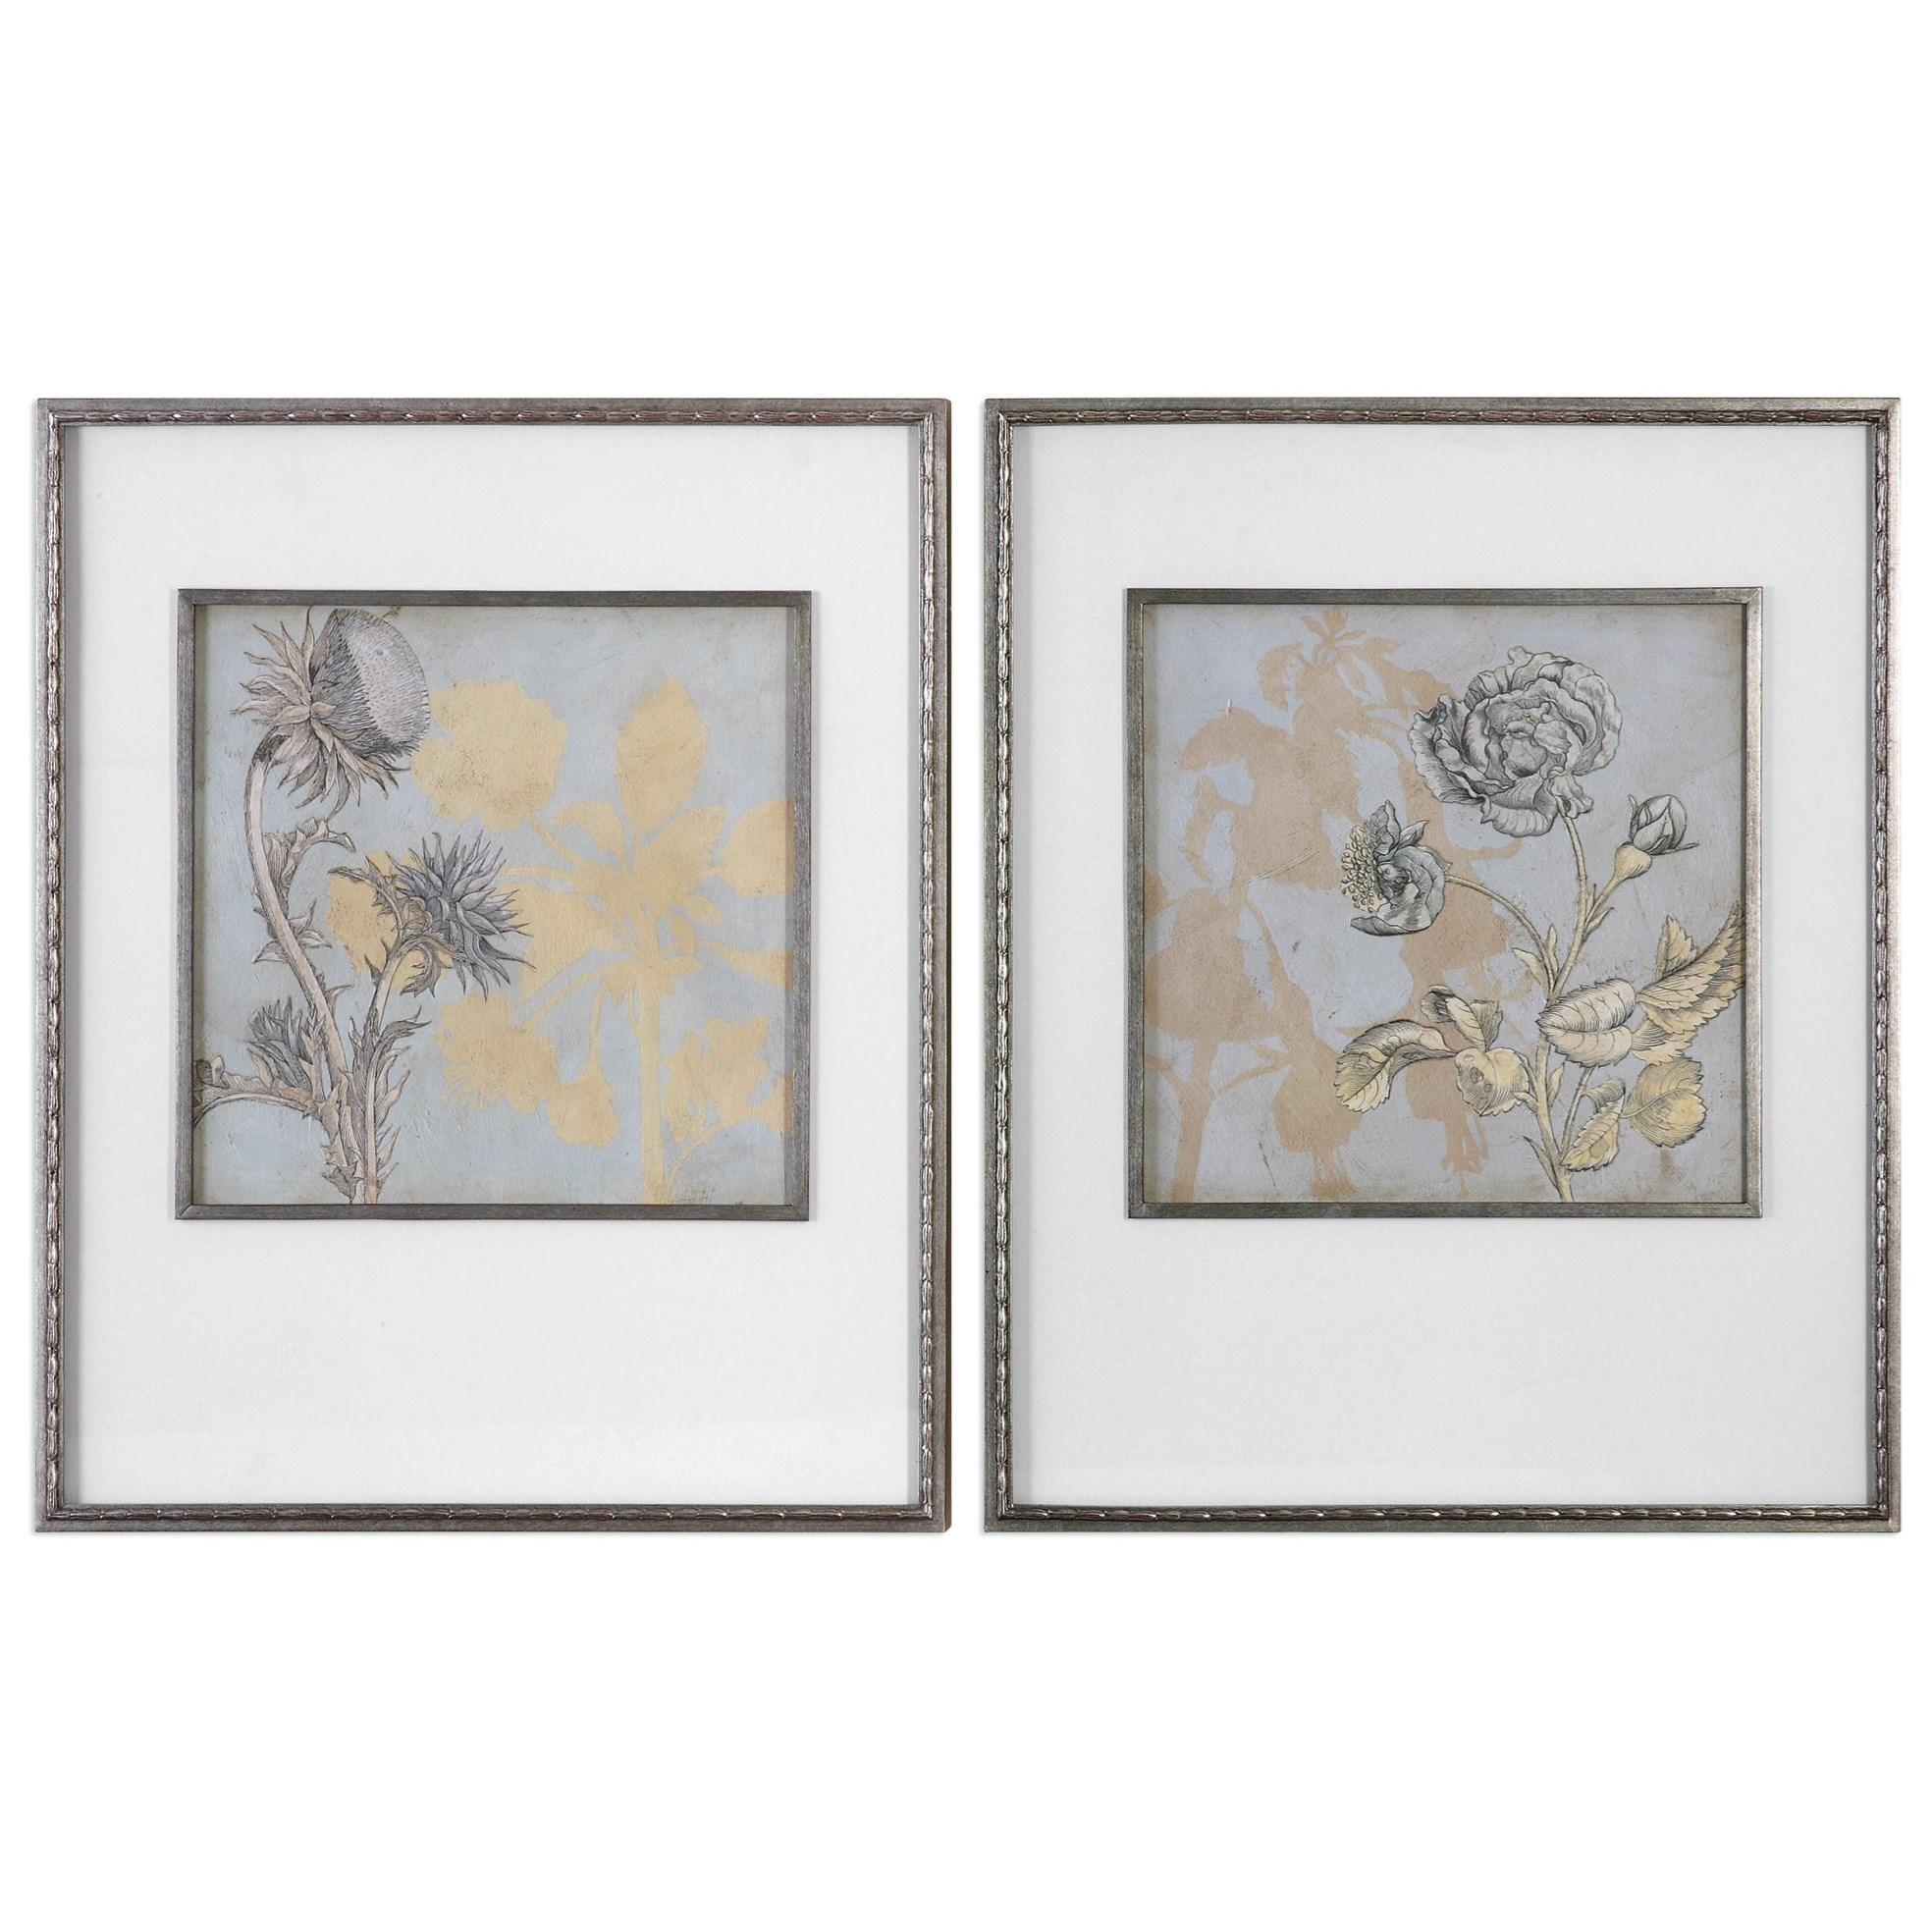 Uttermost Art Shadow Florals (Set of 2) - Item Number: 41562